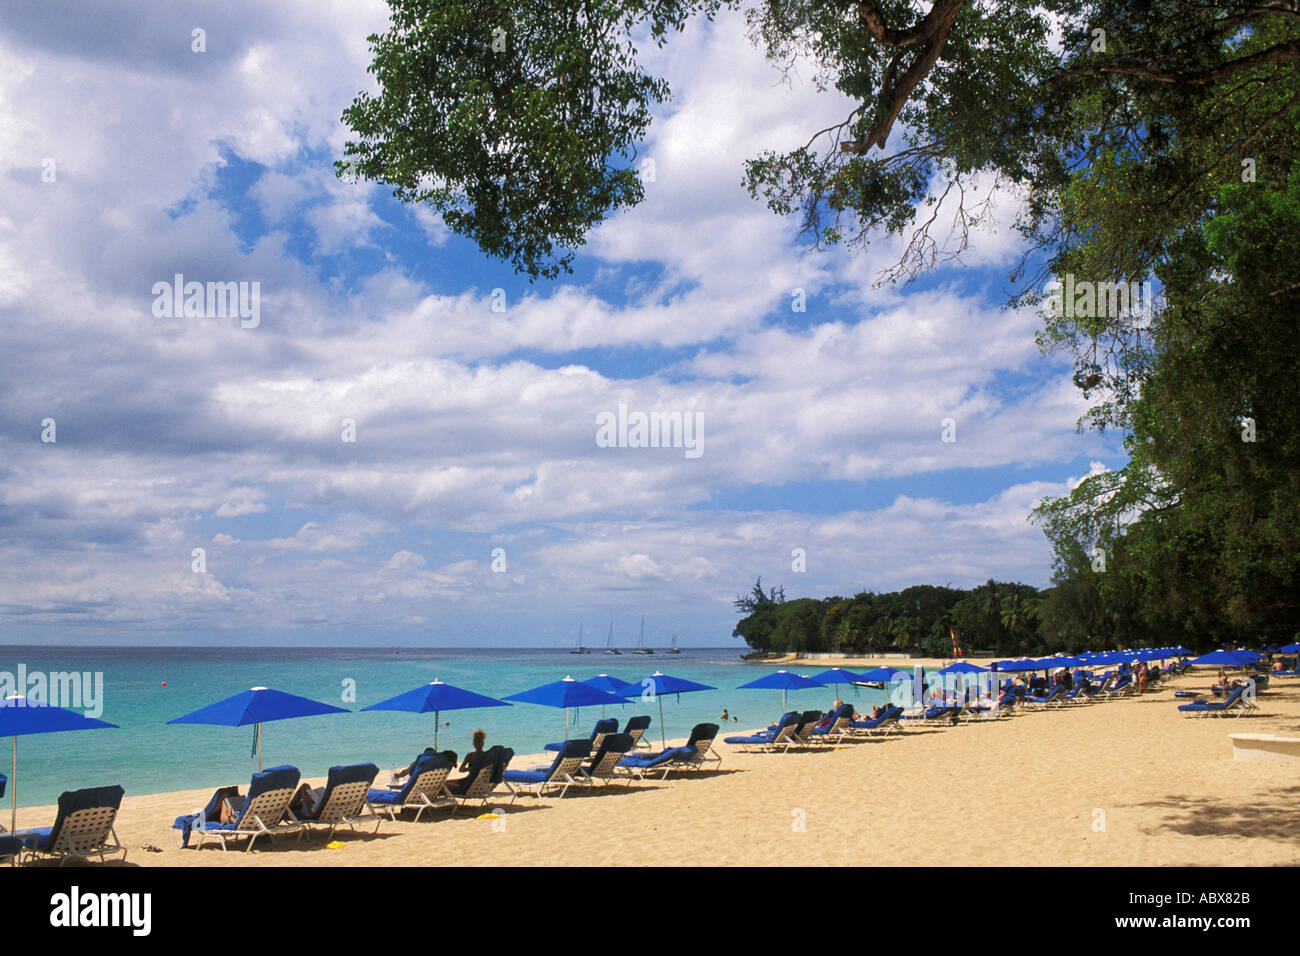 Barbados, St James, Sandy Lane, beach - Stock Image